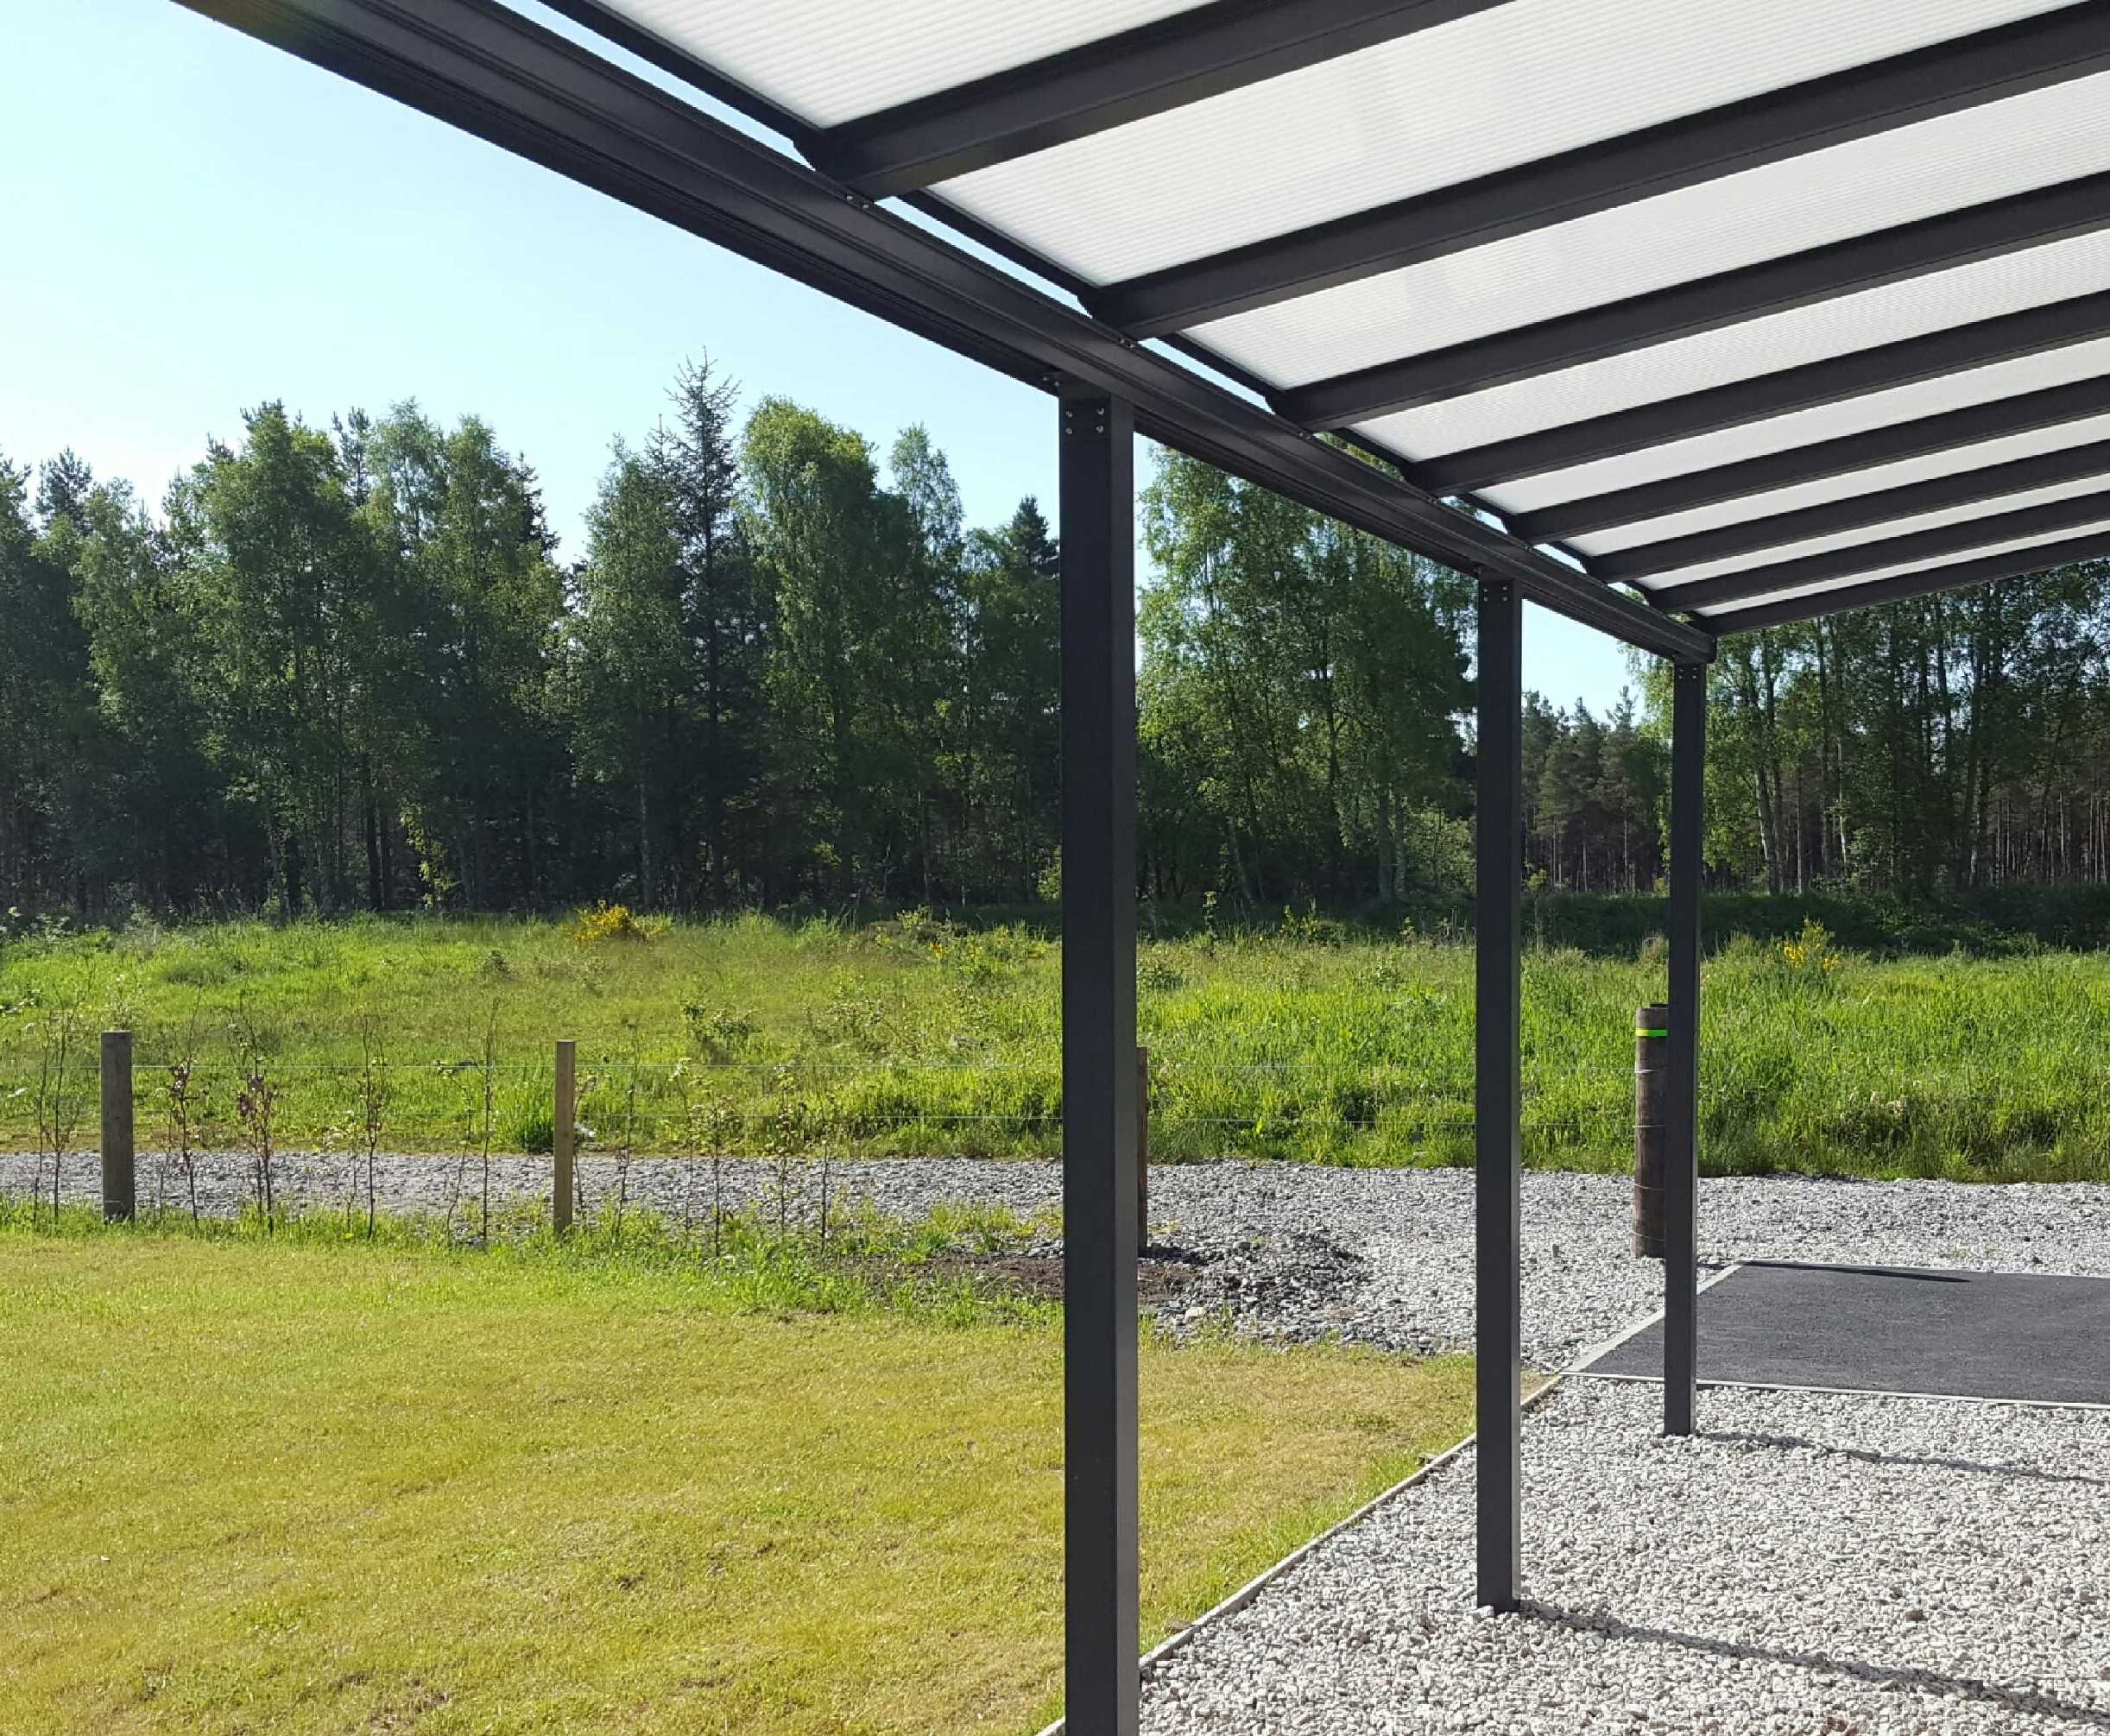 Omega Smart Lean-To Canopy, Anthracite Grey, 16mm Polycarbonate Glazing - 2.1m (W) x 3.5m (P), (2) Supporting Posts